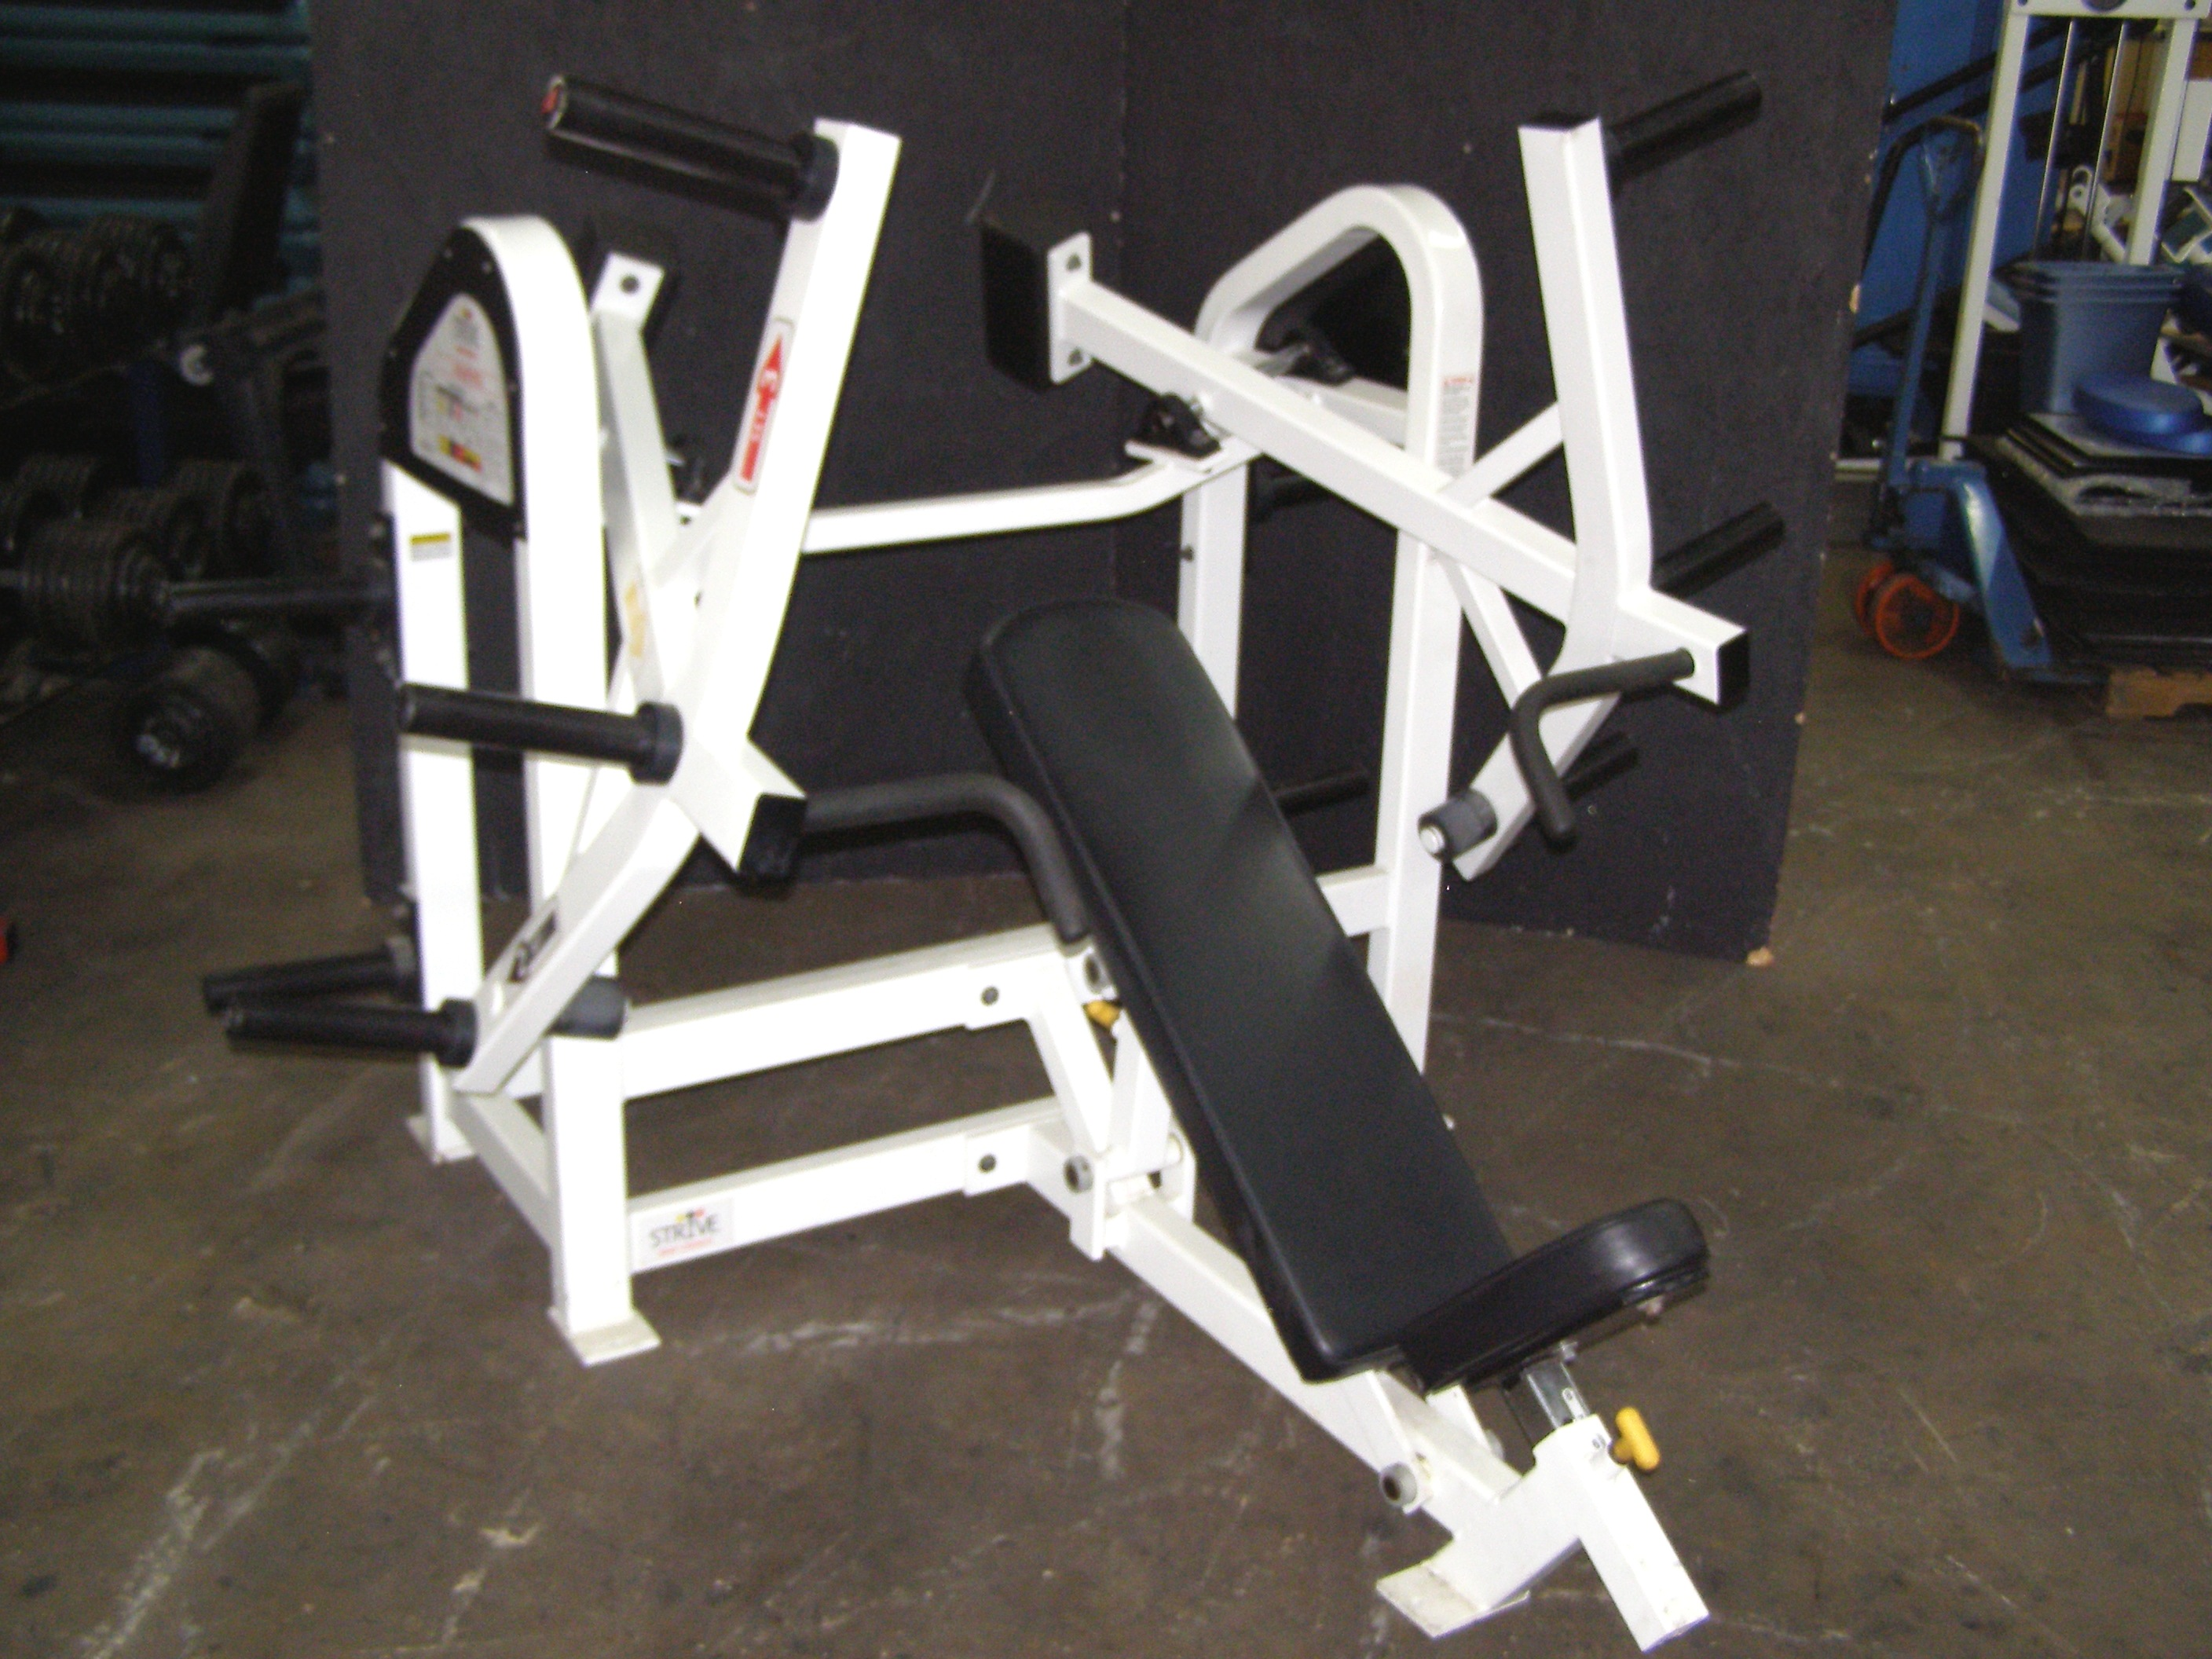 Incline Bench Press Exrx Incline Barbell Bench Press